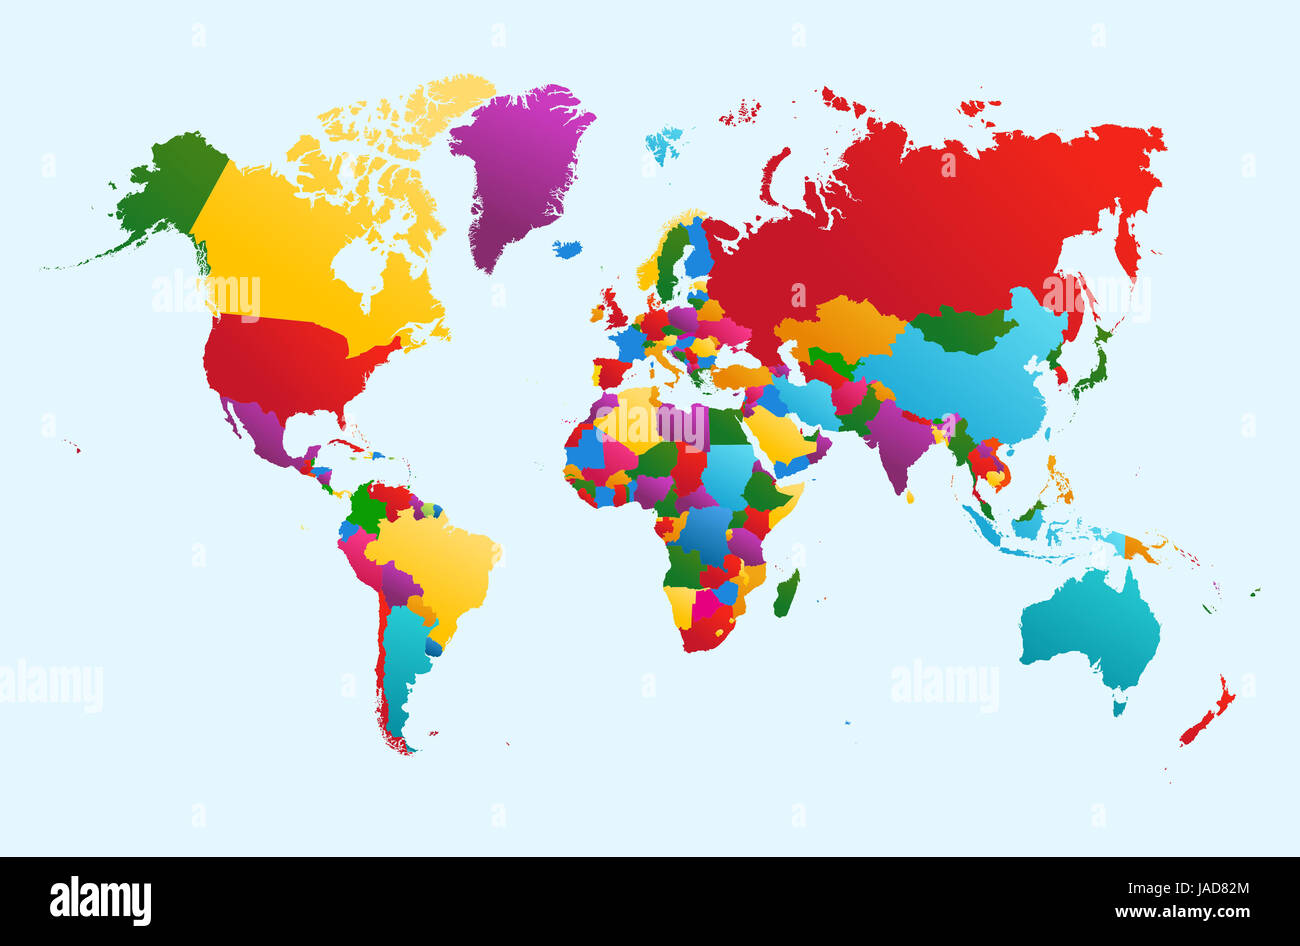 World map, colorful countries Atlas illustration. - Stock Image